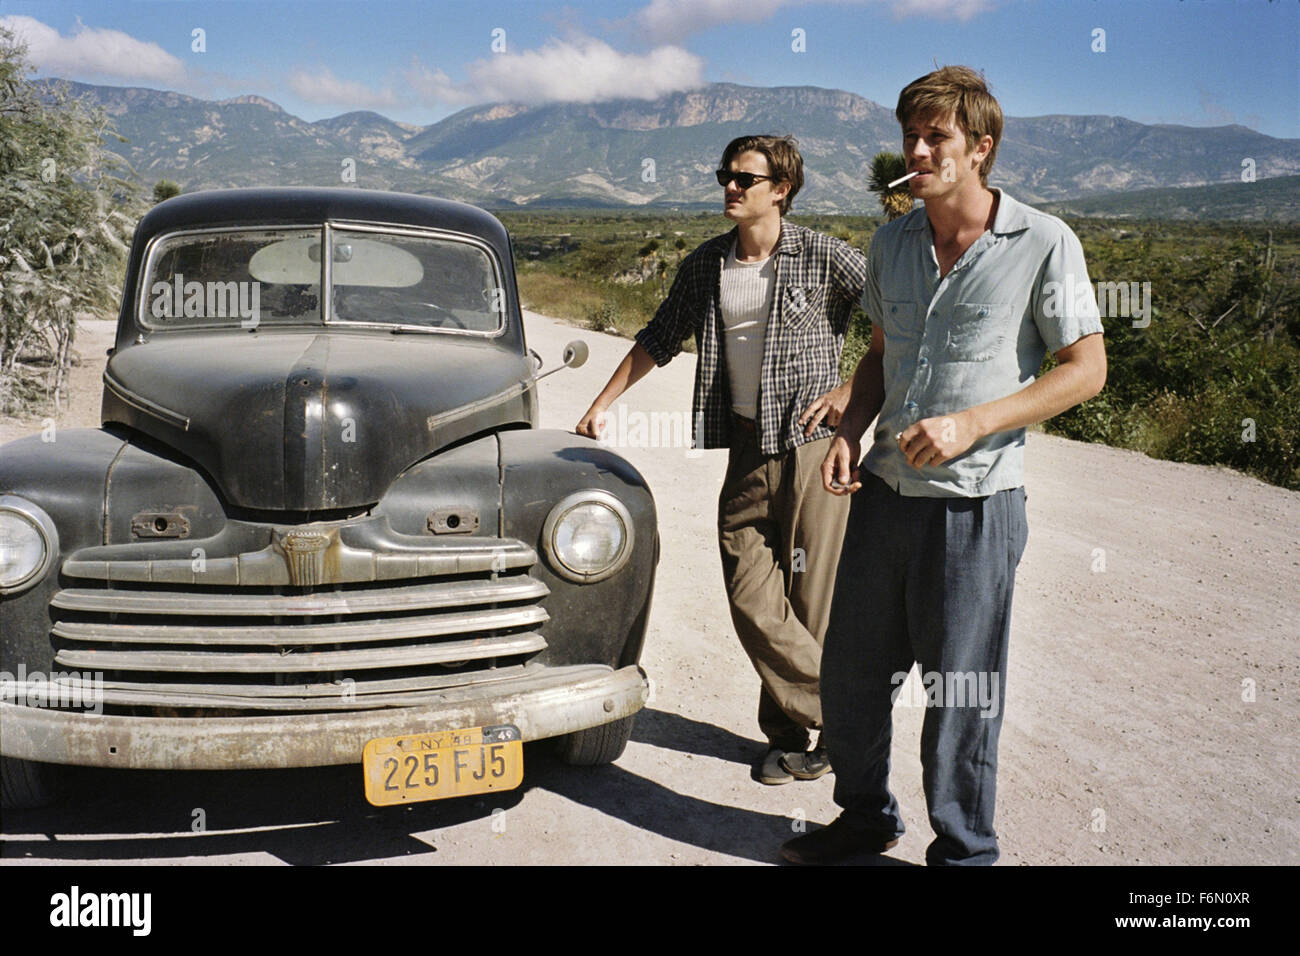 RELEASE DATE: September 2012 MOVIE TITLE: On the Road STUDIO: MK2 ...